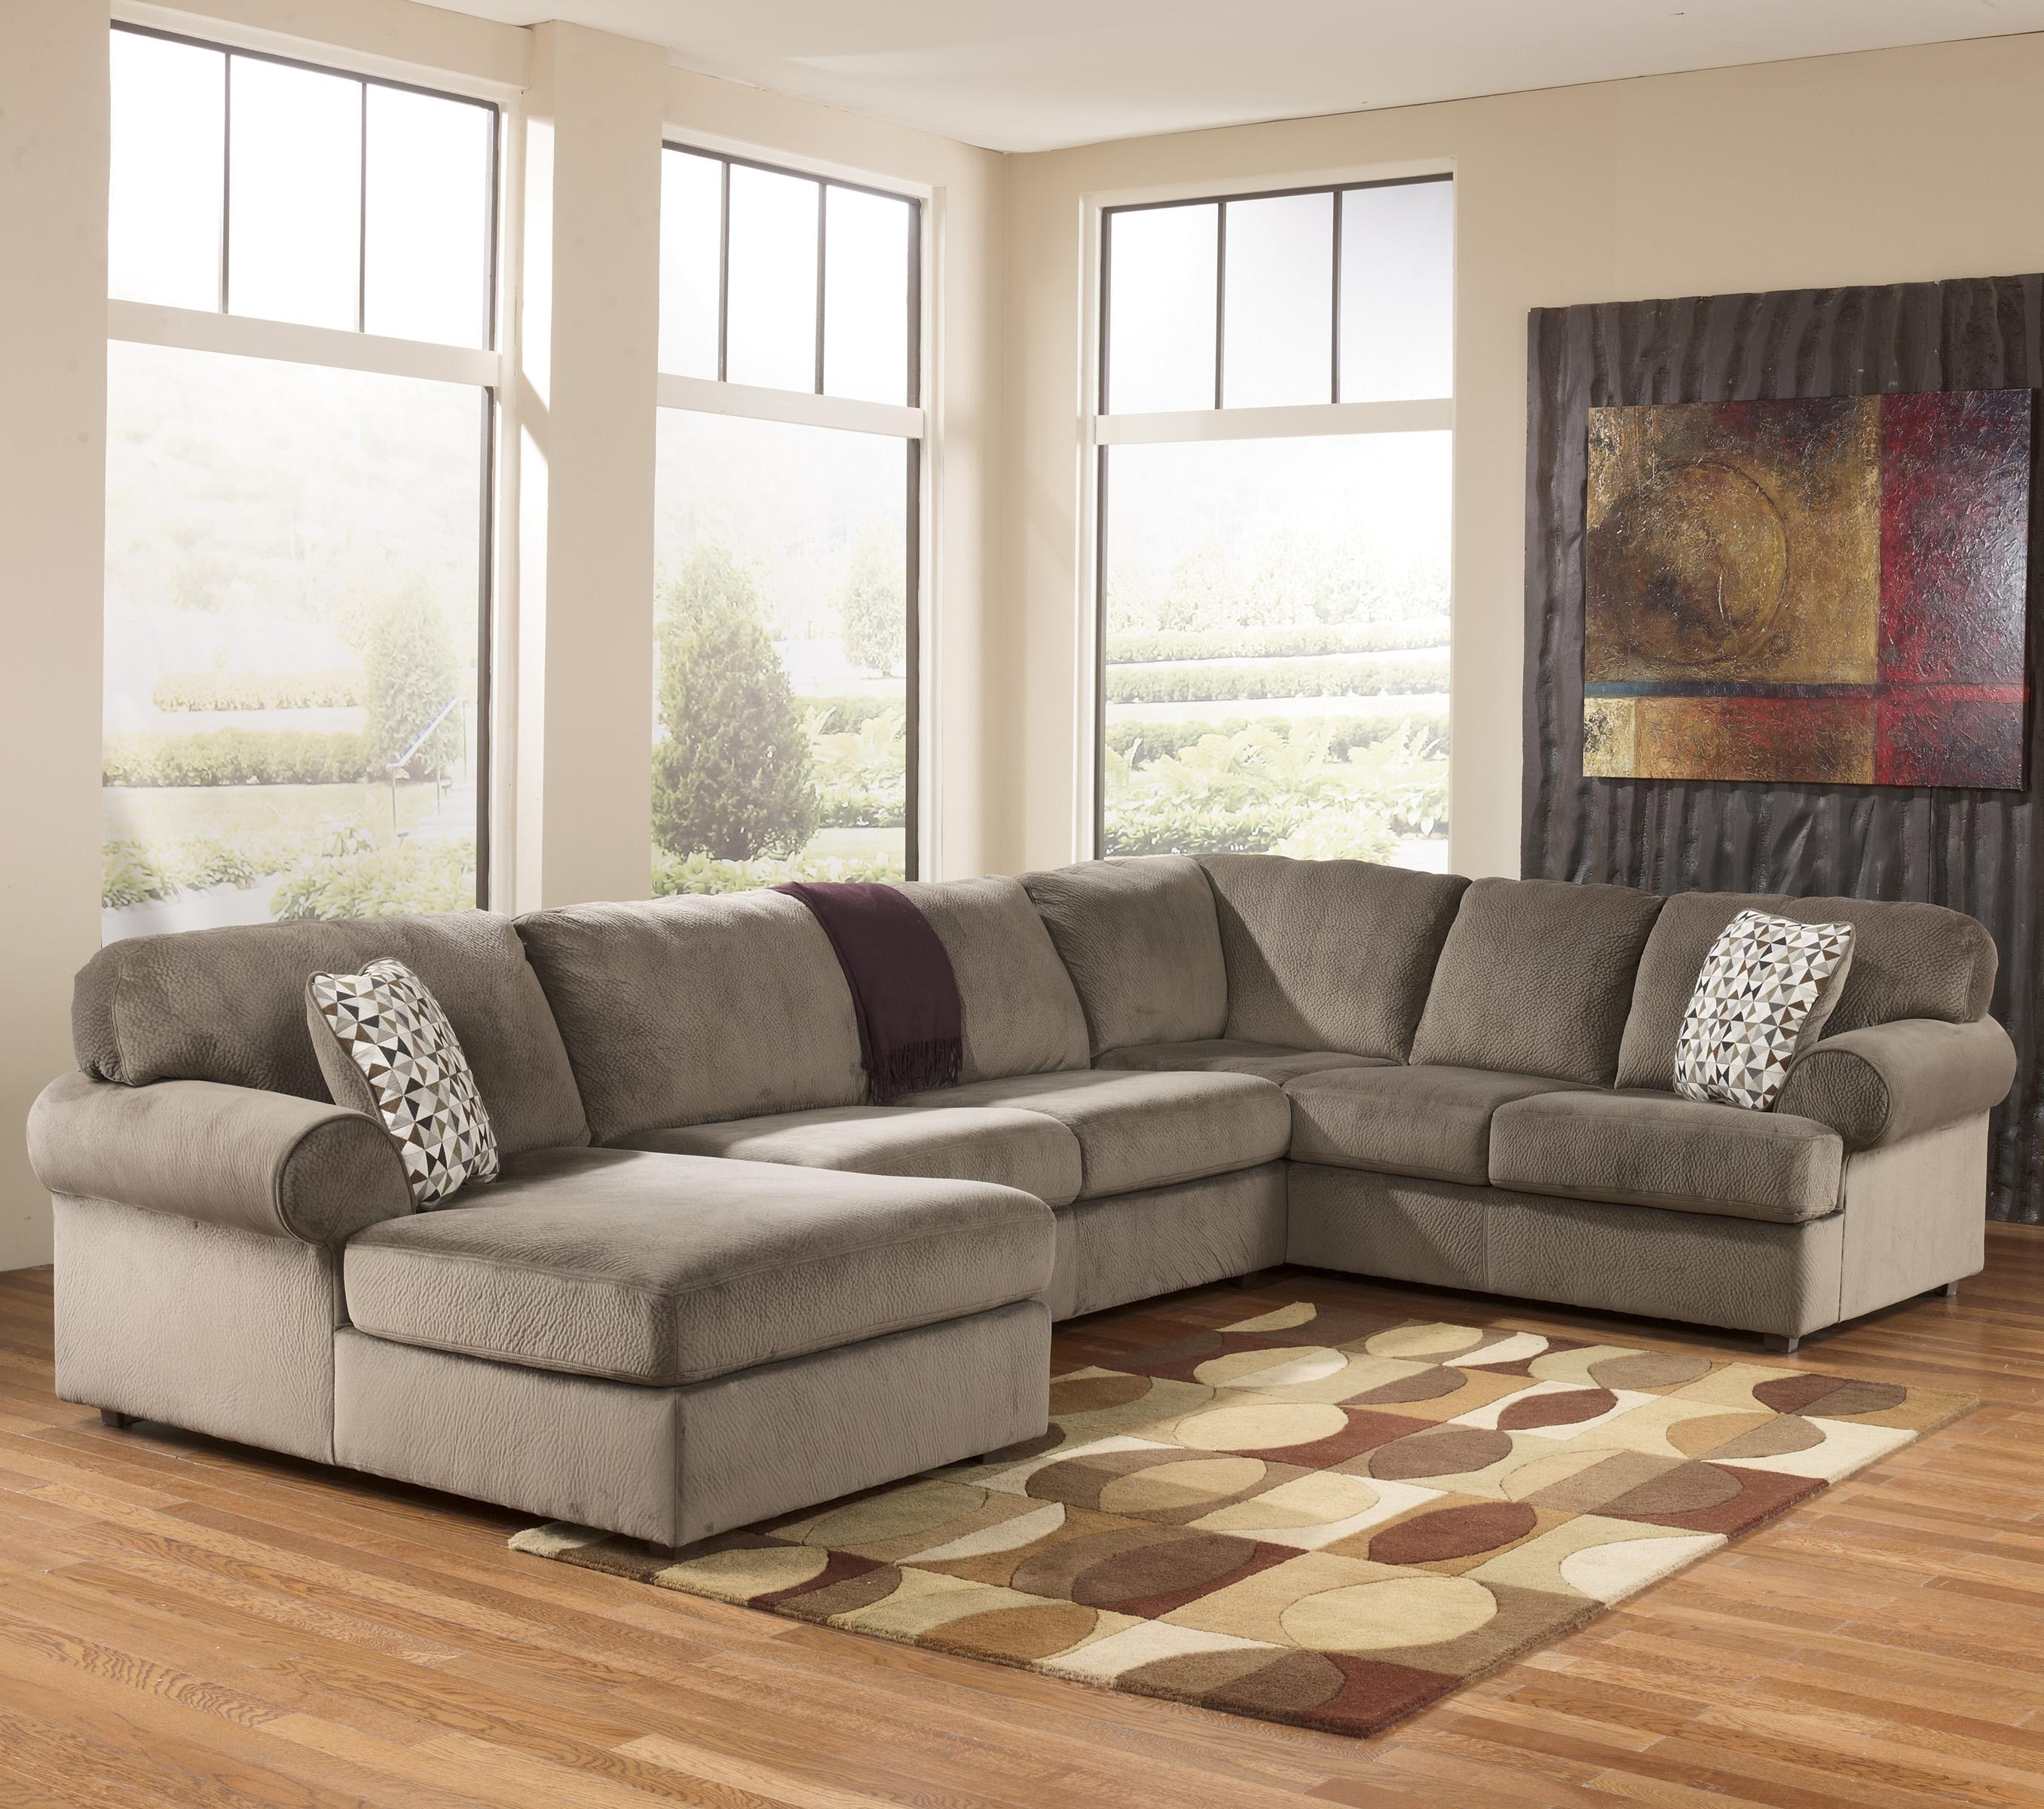 Trendy Signature Designashley Jessa Place – Dune Casual Sectional With Regard To El Paso Tx Sectional Sofas (View 7 of 15)